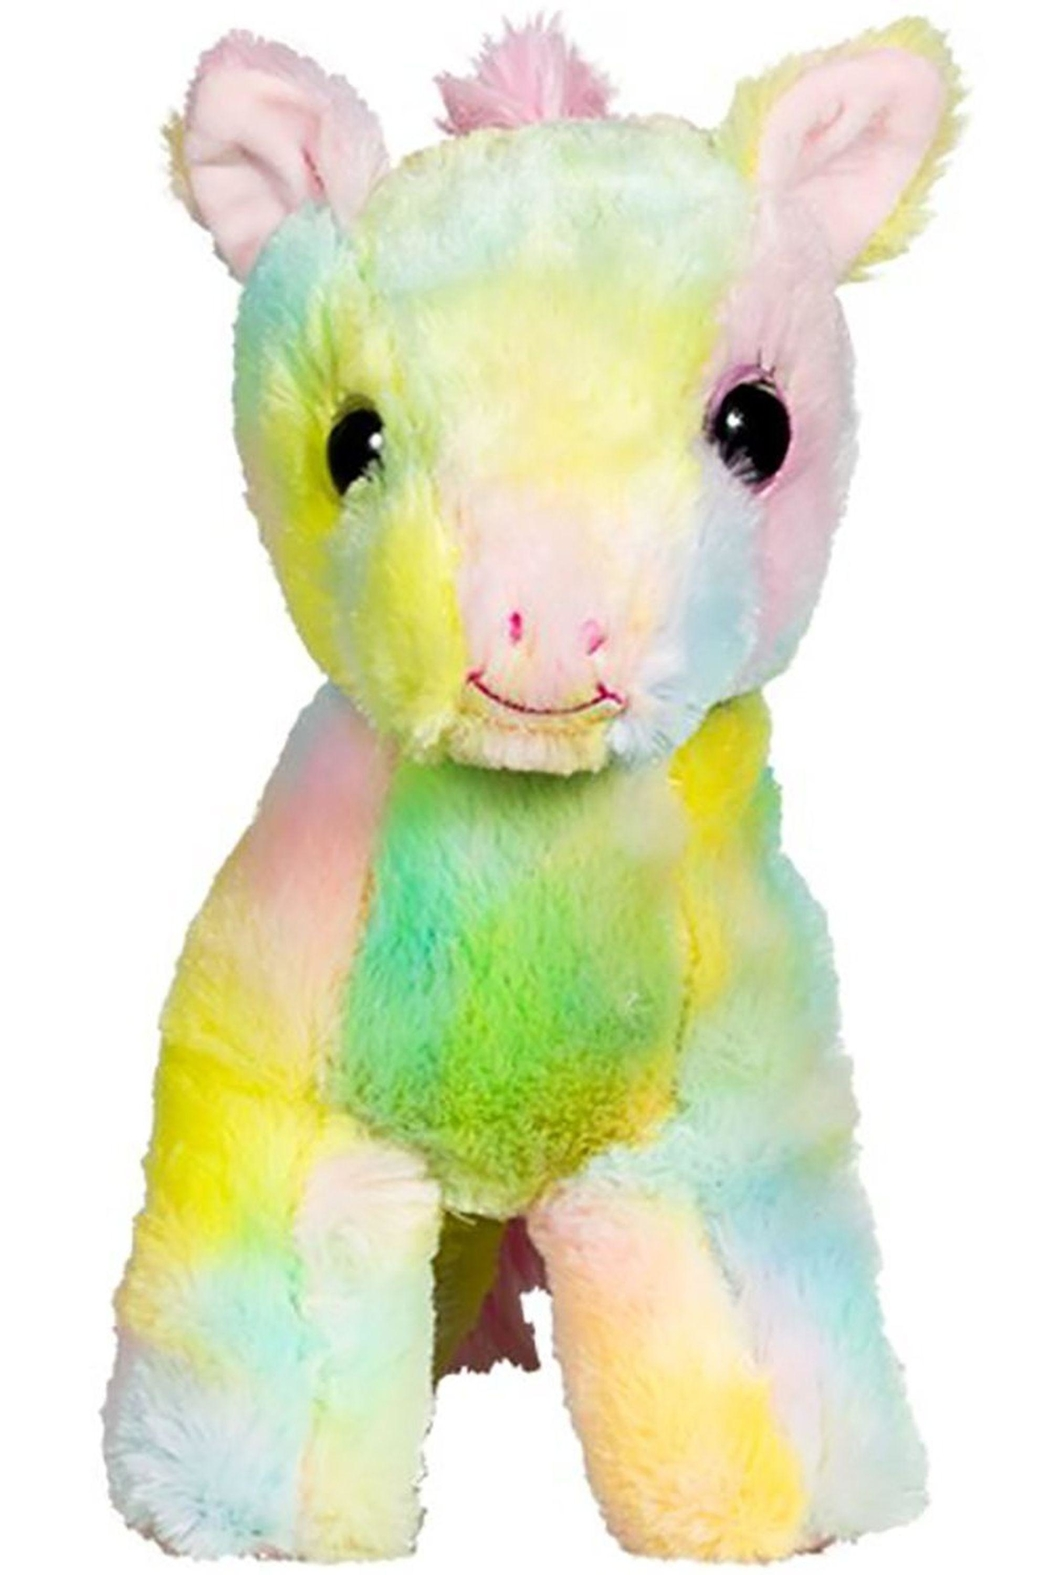 Teddy Mountain Make-Your-Own Buttercup Pony Kit - Main Image